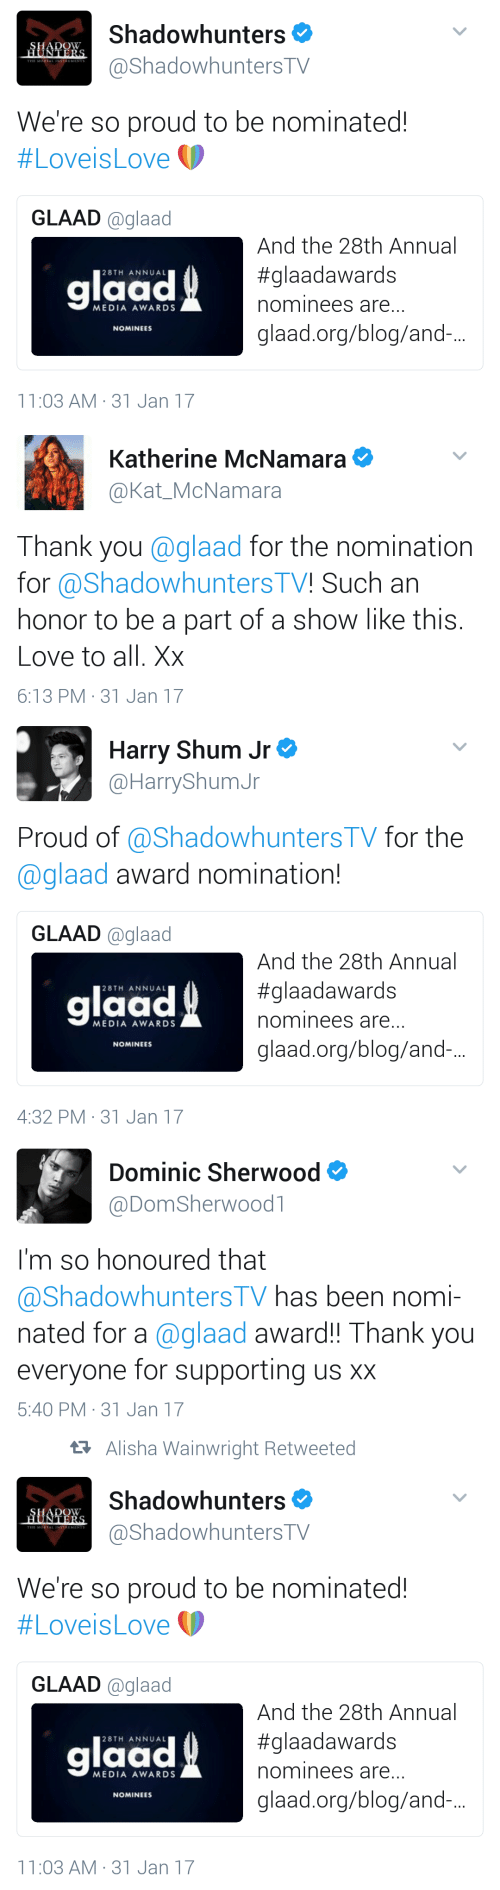 Annually: Shadowhunters  @ShadowhuntersTV  We're so proud to be nominated!  #Lovels Love  GLAAD glaad  glaad  And the 28th Annual  #glaadawards  nominees are...  glaad.org/blog/and.  28TH ANNUAL  MEDIA AWARDS  NOMINEES  11:03 AM- 31 Jan 17   Katherine McNamara  @Kat_McNamara  Thank you @glaad for the nomination  for @Shadowhunters TV! Such an  honor to be a part of a show like this.  Love to all. Xx  6:13 PM 31 Jan 17   Harry Shum Jr  @HarryShumJr  Proud of @ShadowhuntersTV for the  @glaad award nomination!  GLAAD @glaad  And the 28th Annual  #glaadawards  nominees are  glaad.org/blog/and.-...  laad  28TH ANNUAL  MEDIA AWARDS  NOMINEES  4:32 PM 31 Jan 17   Dominic Sherwood  @DomSherwoodl  I'm so honoured that  ashadowhunters IV has been nomi-  nated for a @glaad award!! Thank you  everyone for supporting us xx  5:40 PM 31 Jan 17   t7 Alisha Wainwright Retweeted  Shadowhunters  @ShadowhuntersTV  We're so proud to be nominated!  (p  #Loveis Love  GLAAD @glaad  laad  And the 28th Annual  #glaadawards  nominees are  glaad.org/blog/and.-..  28TH ANNUAL  MEDIA AWARDS  NOMINEES  11:03 AM-31 Jan 17